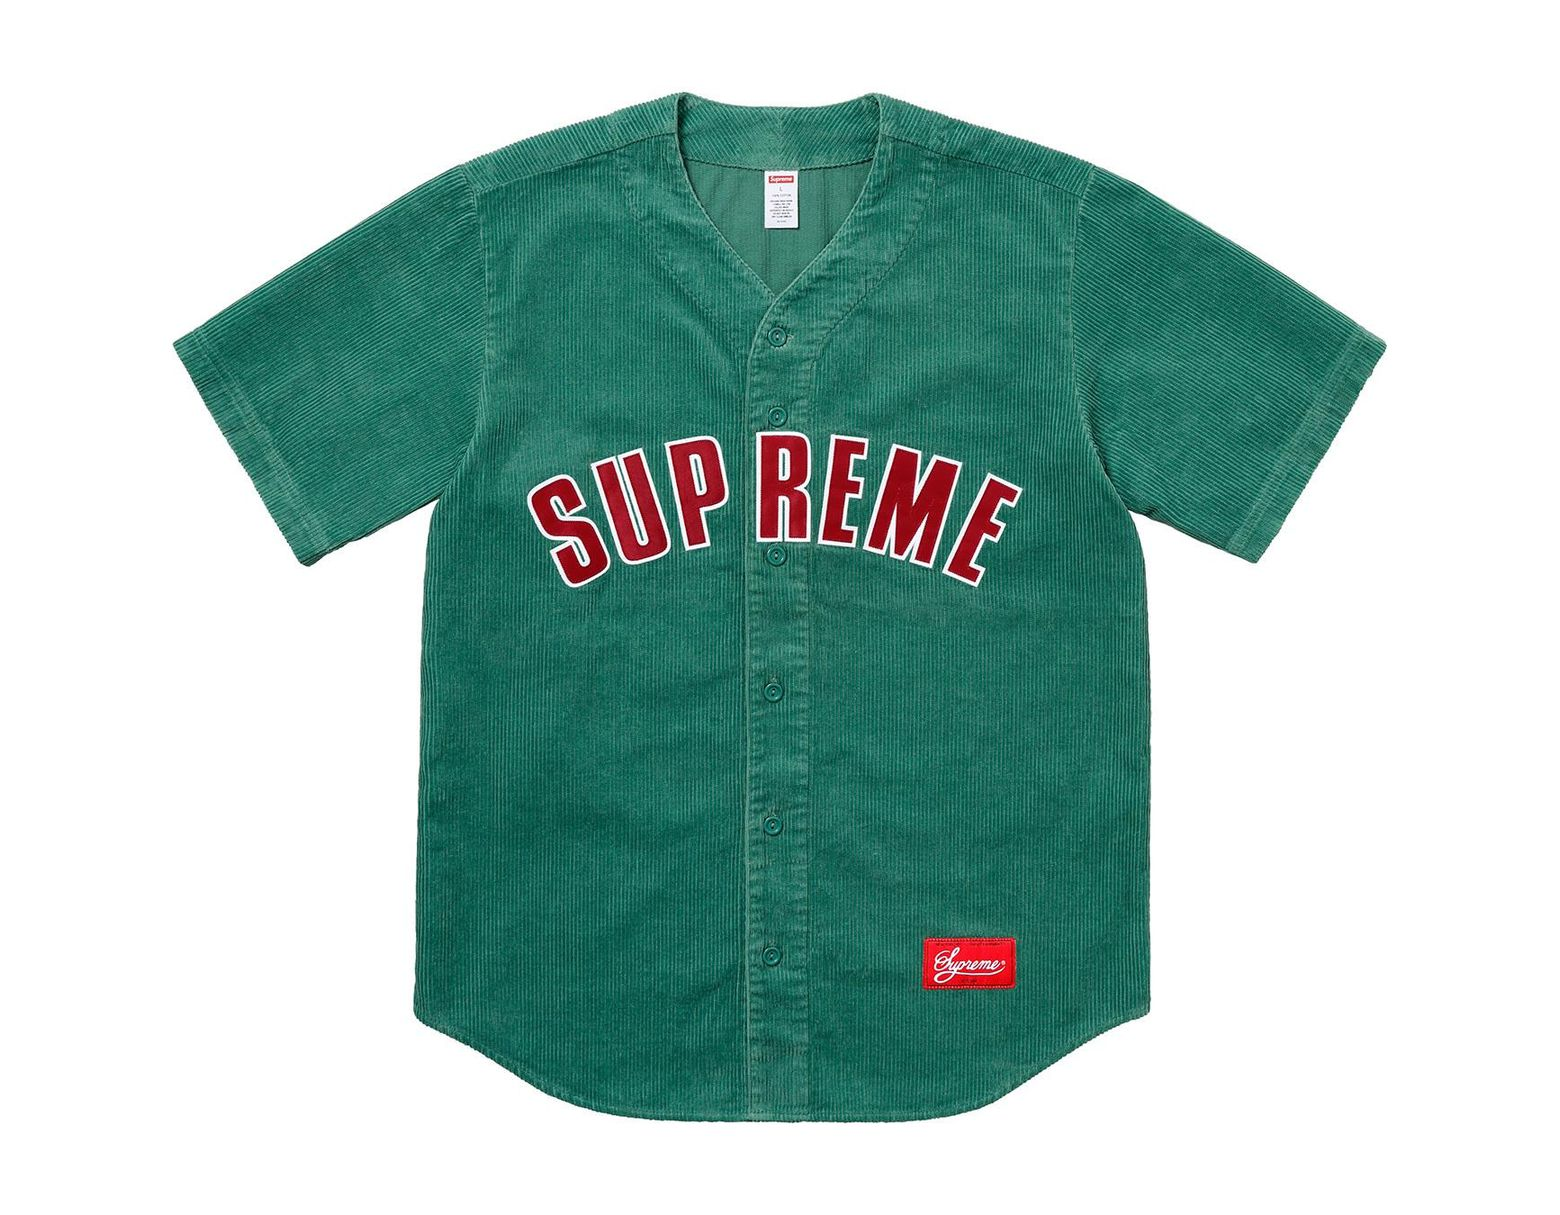 4bdab4b4 Supreme Corduroy Baseball Jersey Dusty Teal in Green for Men - Save 35% -  Lyst